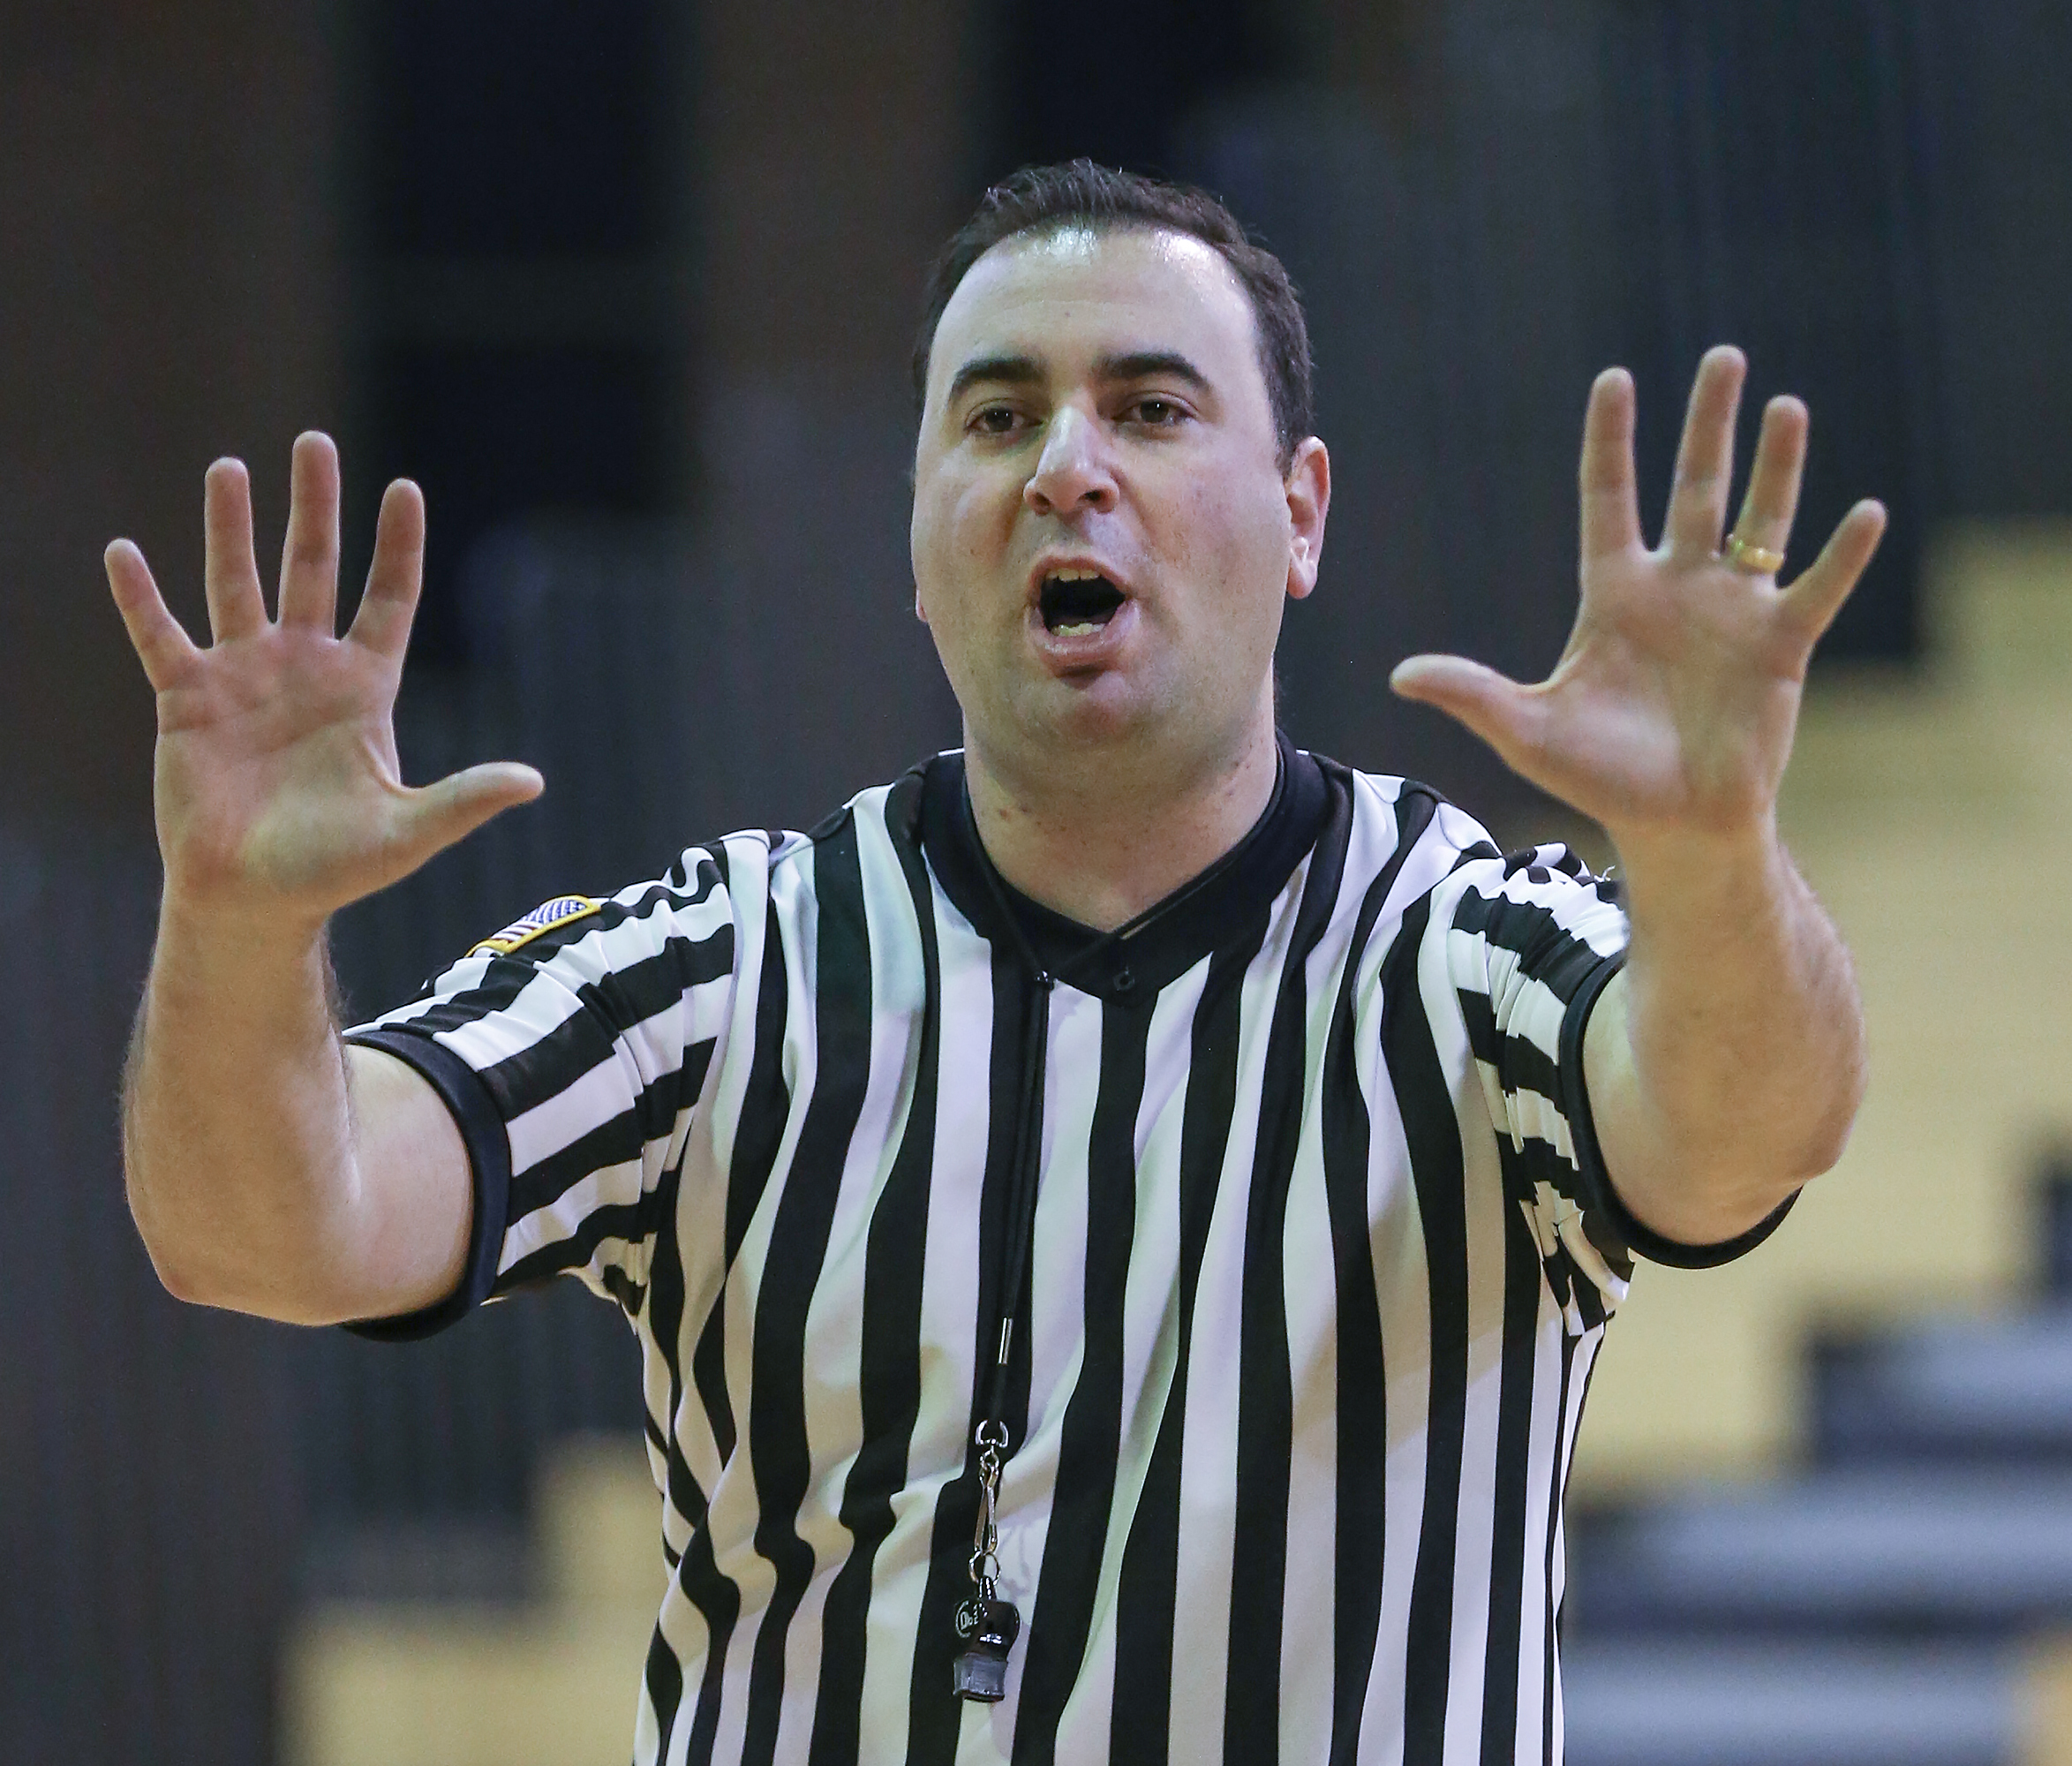 Dominic Frassinelli makes a call during a junior-varsity game in January.